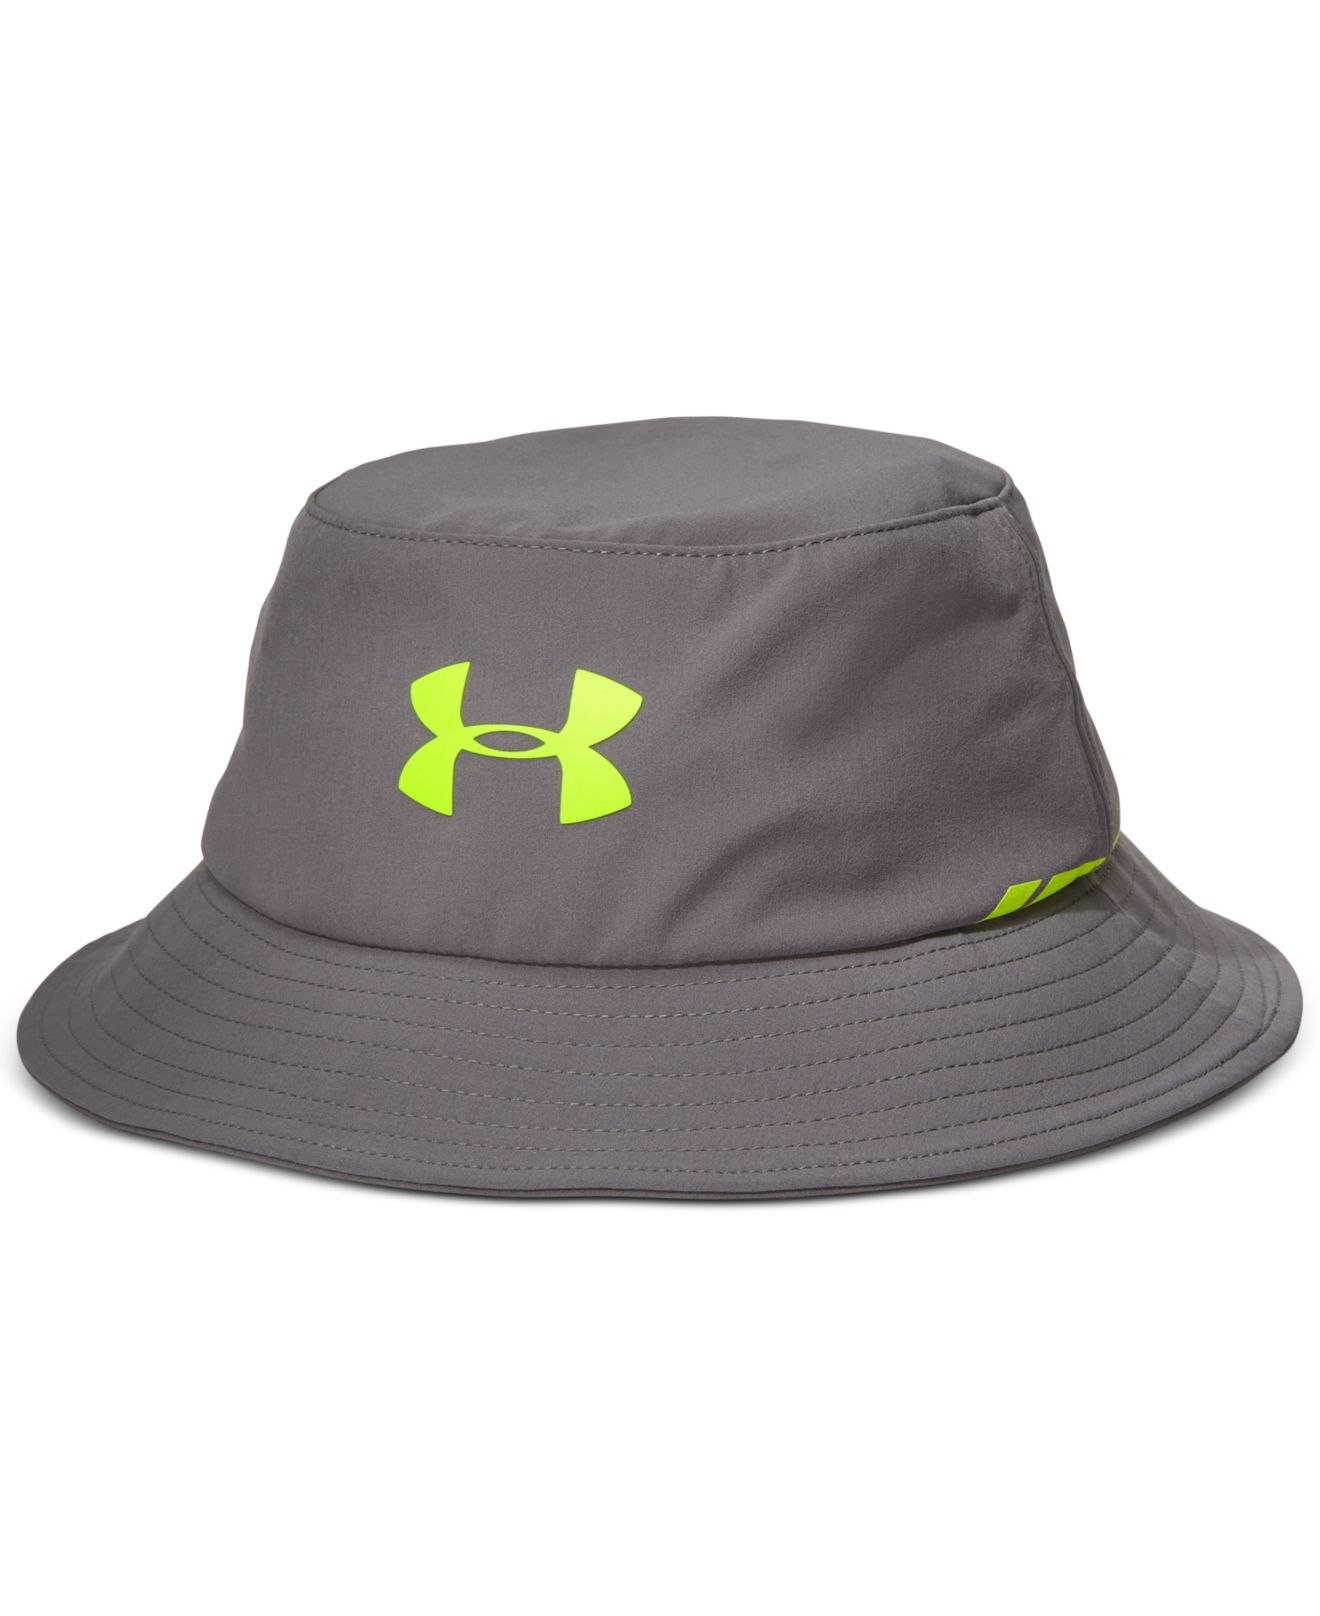 Under Armour Elements Water-Resistant Golf Bucket Hat in ...